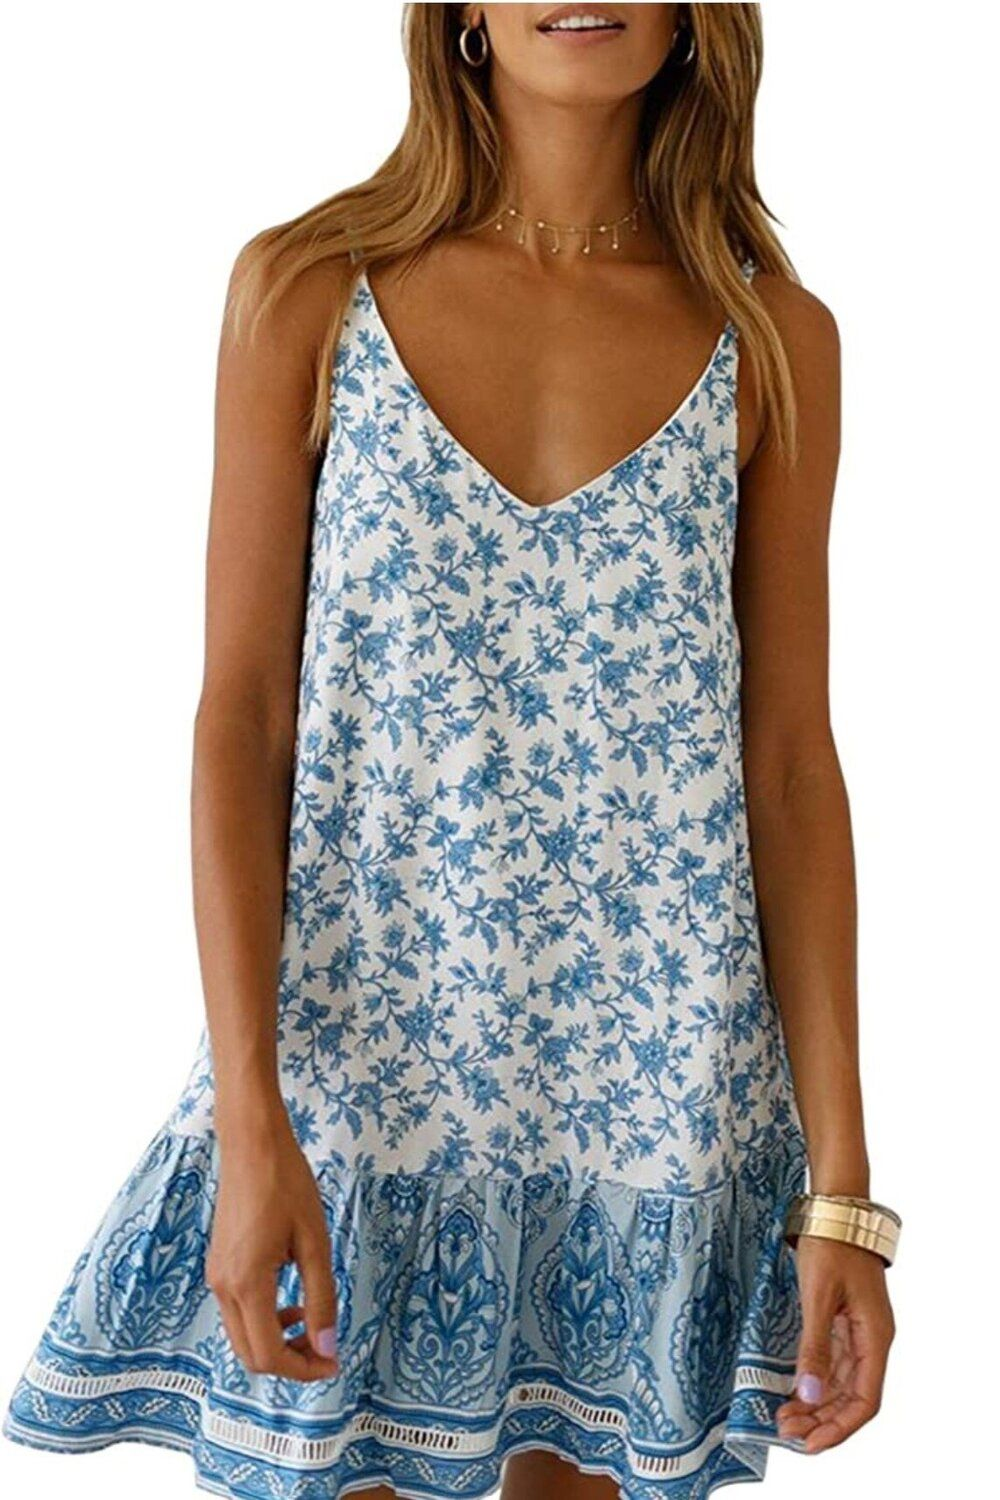 Let S Go Shopping Affordable Amazon Summer Finds Christie Ferrari In 2020 Beach Wear Dresses Simple Summer Outfits Spaghetti Strap Mini Dress